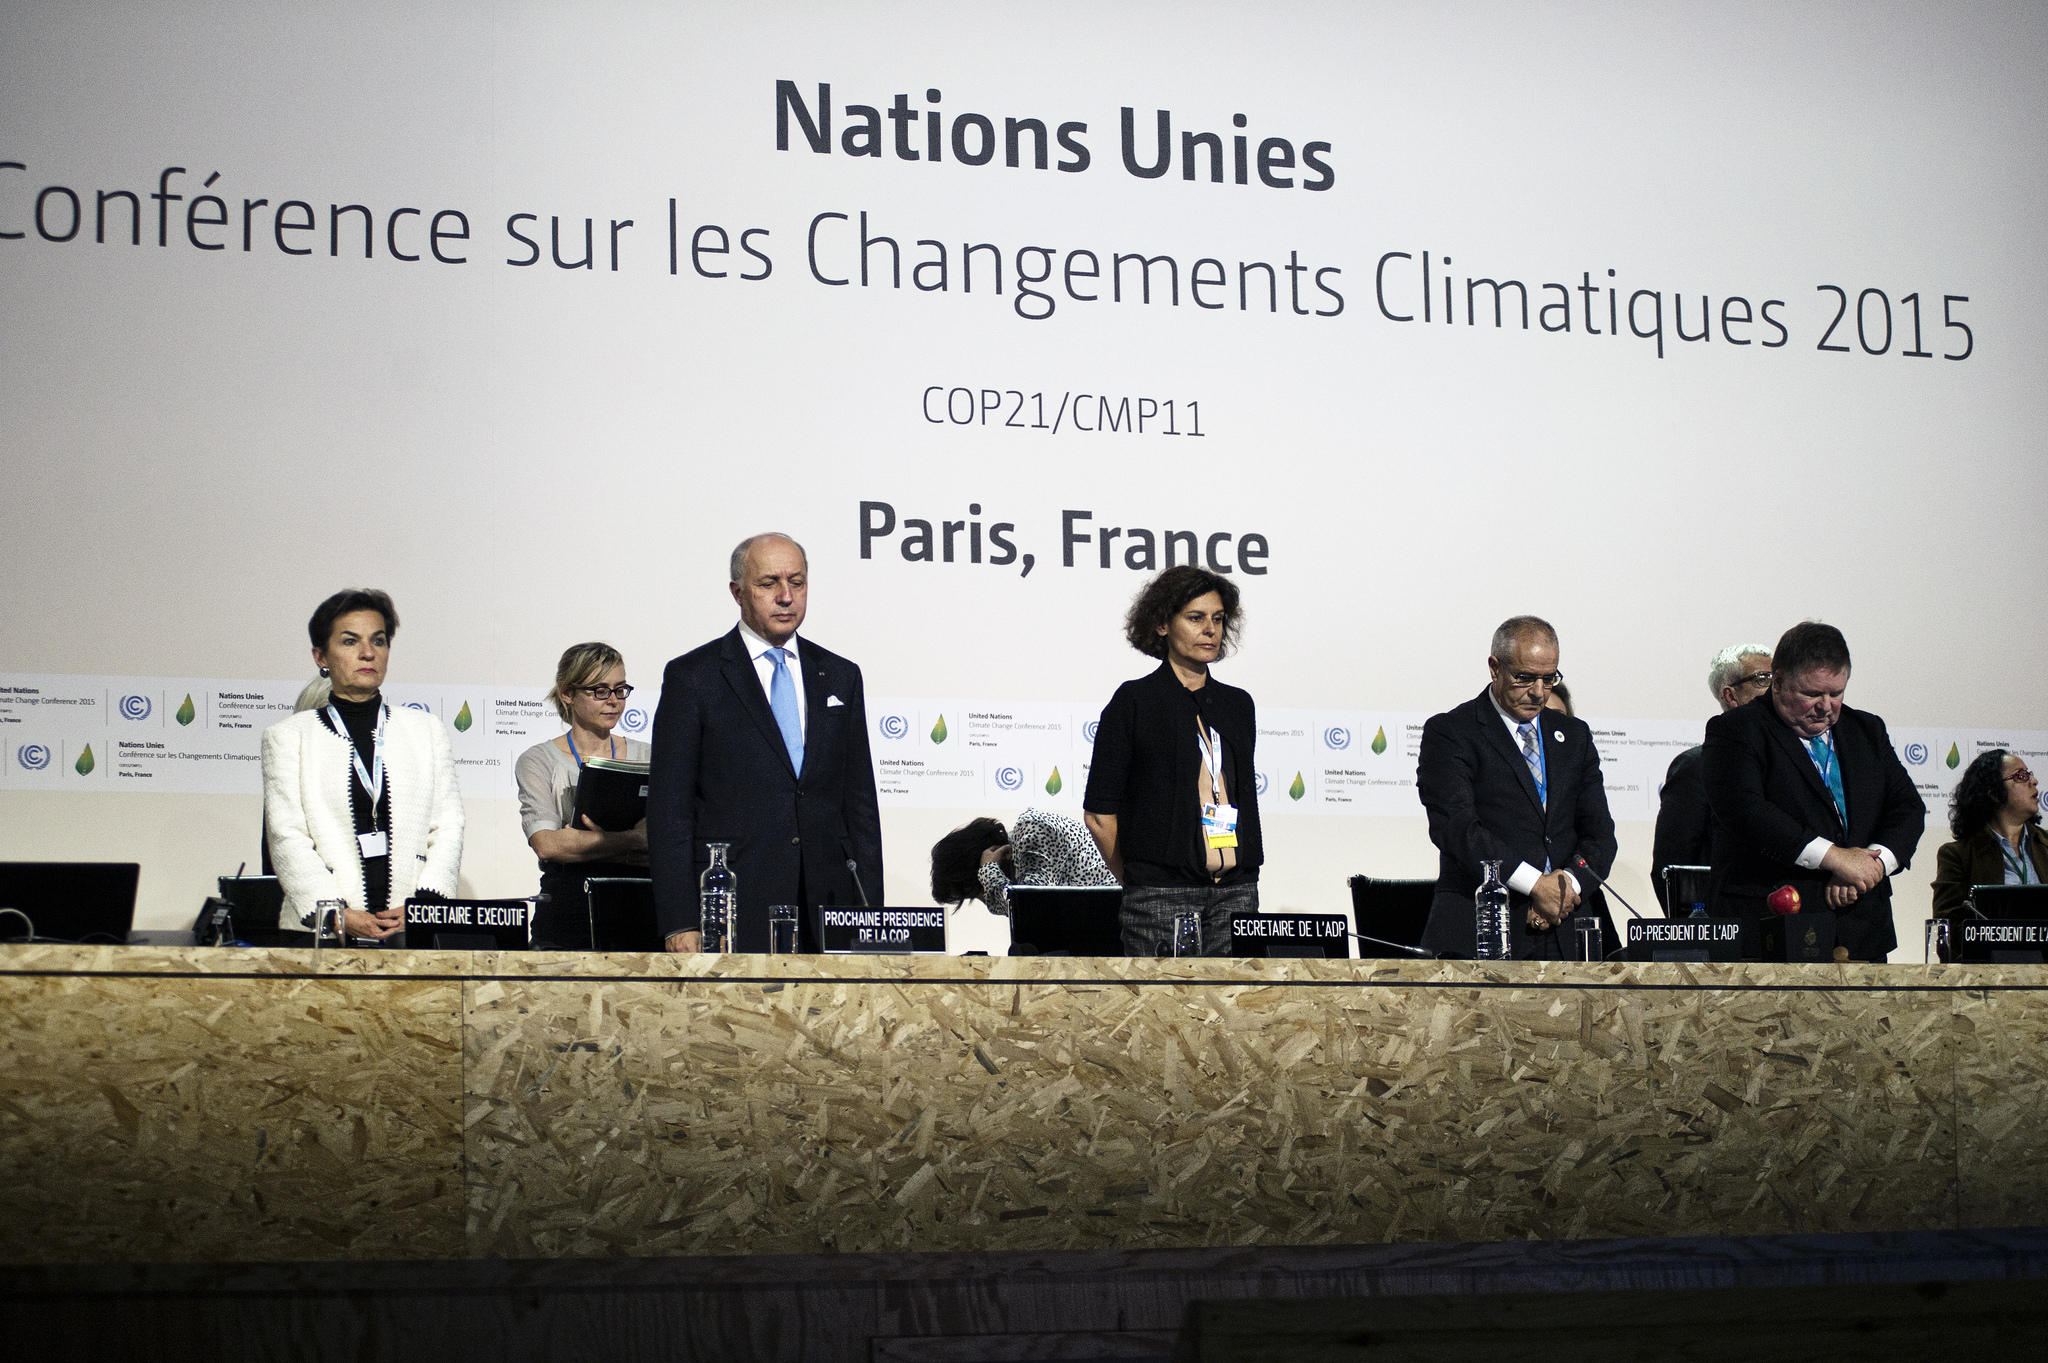 Opening of COP 21 on 29 November 2015. Photo: Benjamin Géminel via Flickr